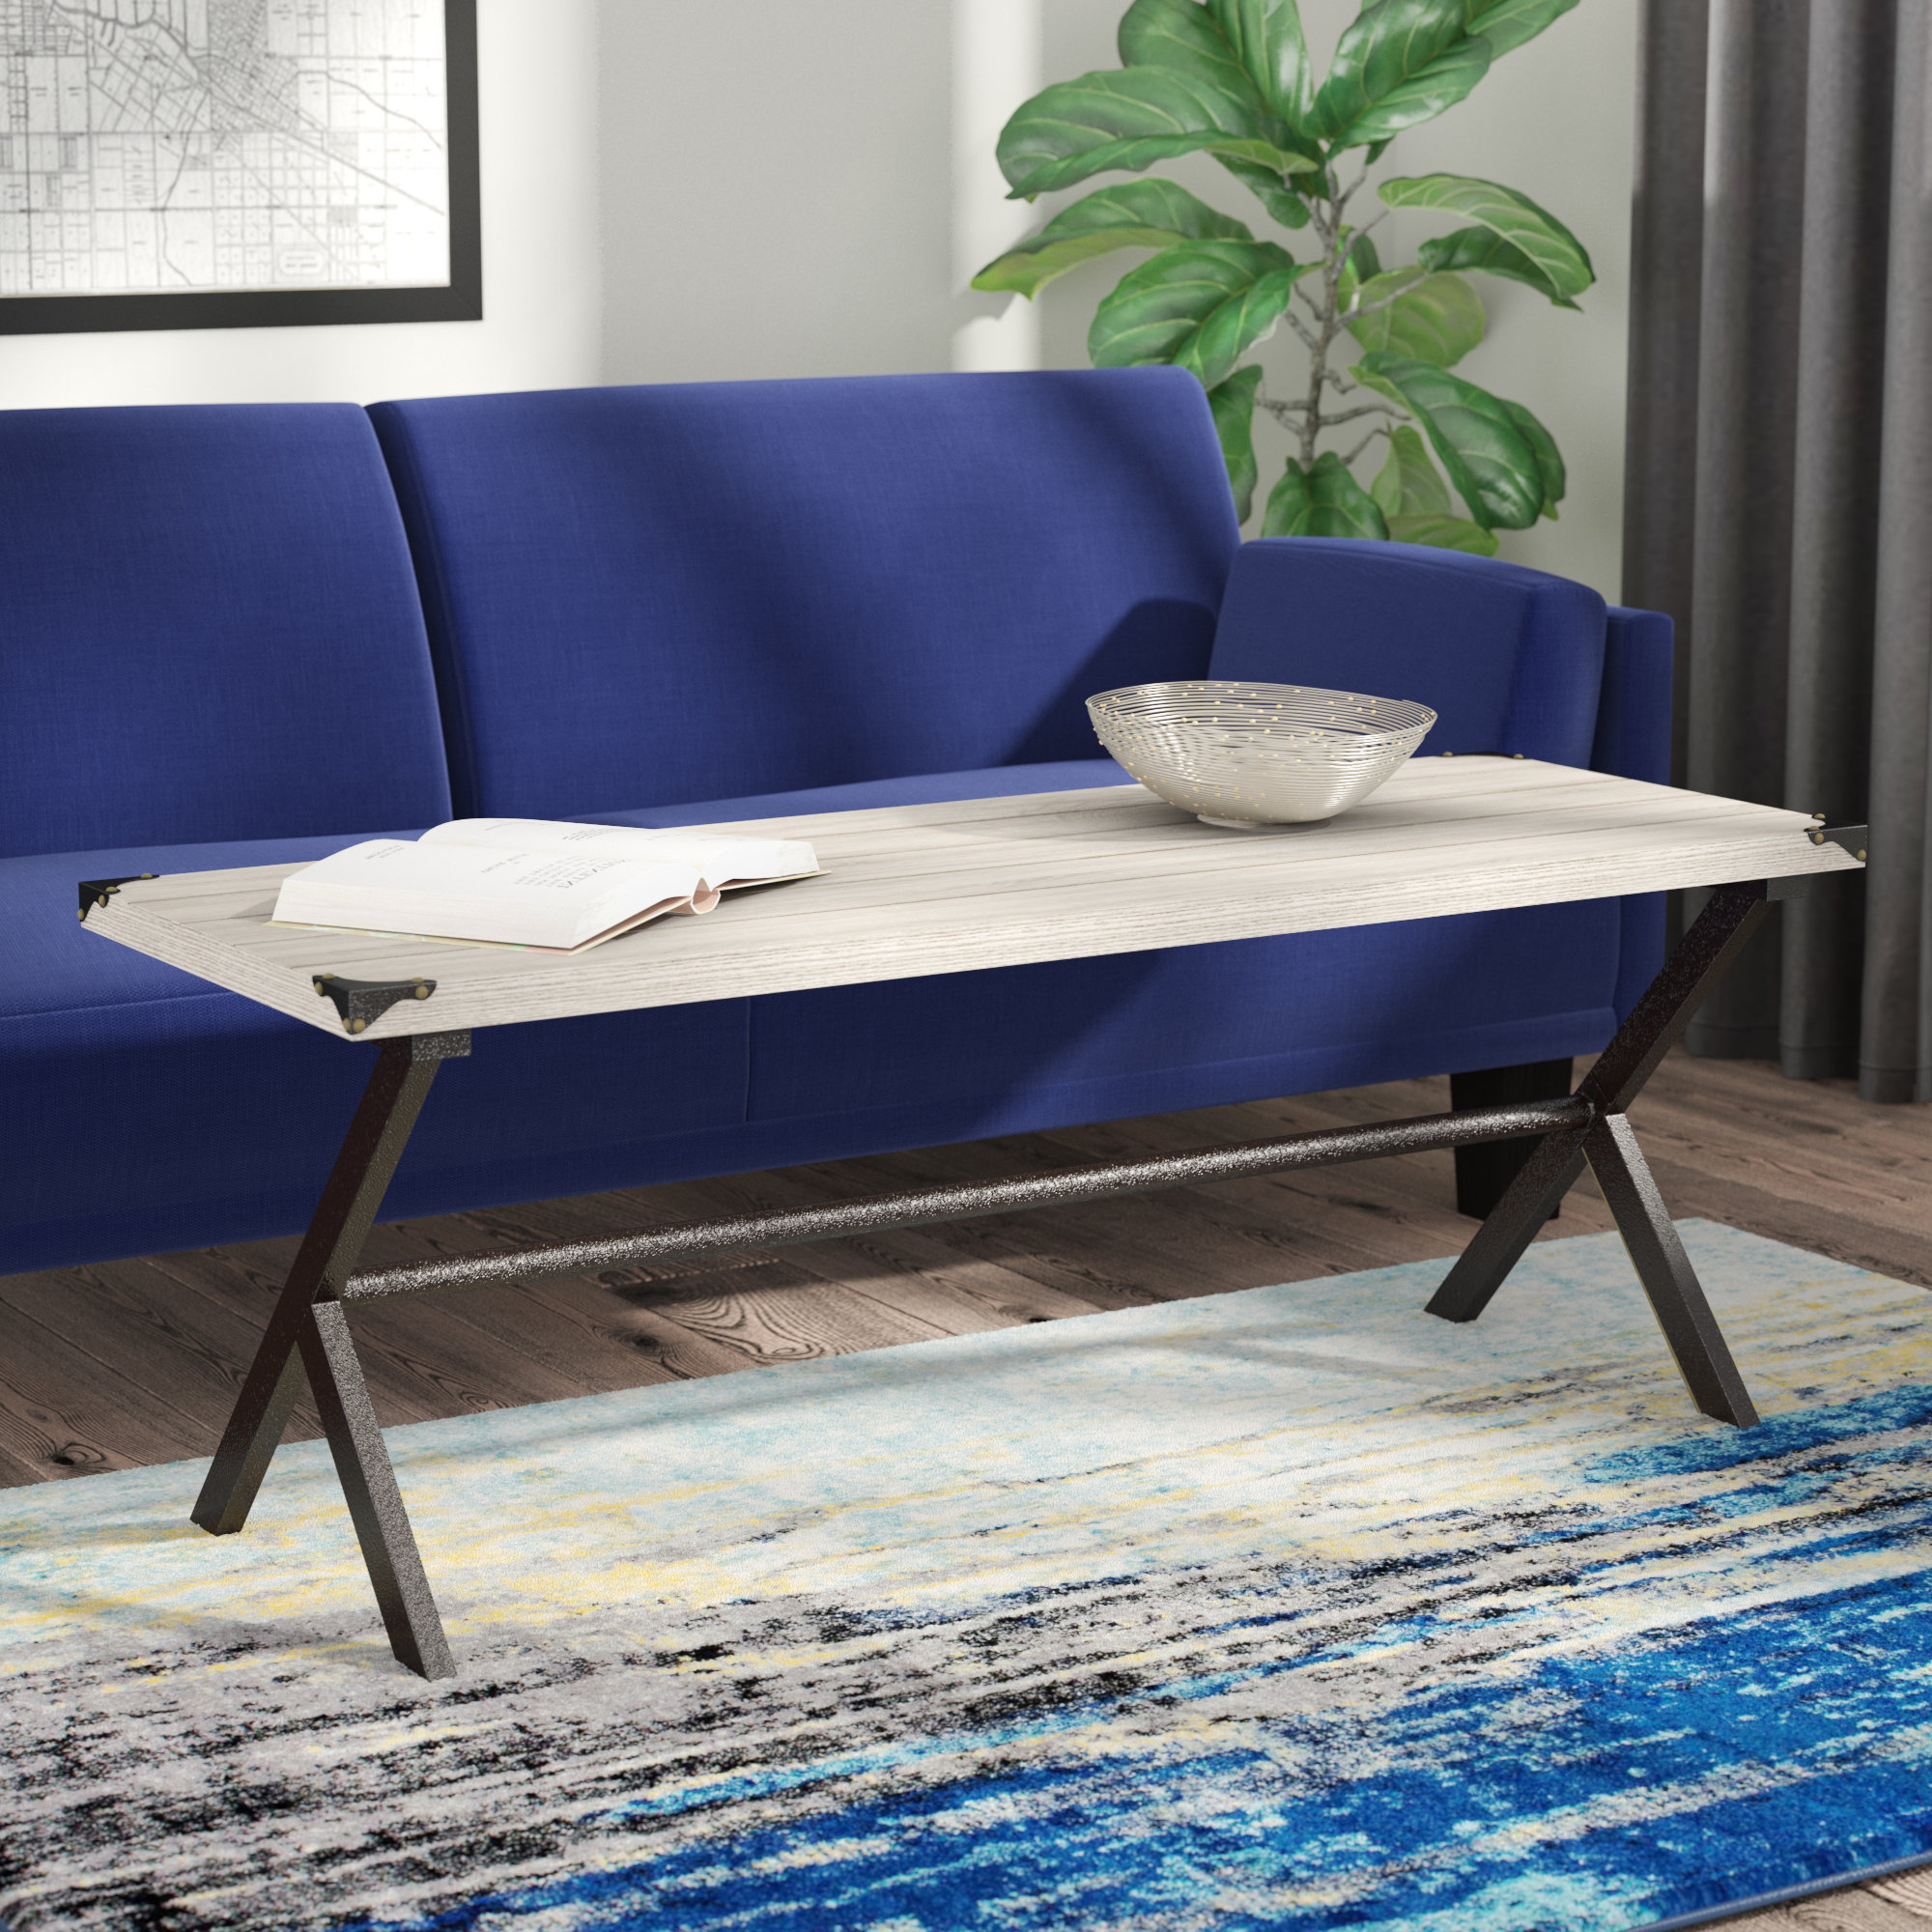 Trent Austin Design Kyra Coffee Table & Reviews | Wayfair With Kyra Console Tables (View 20 of 20)